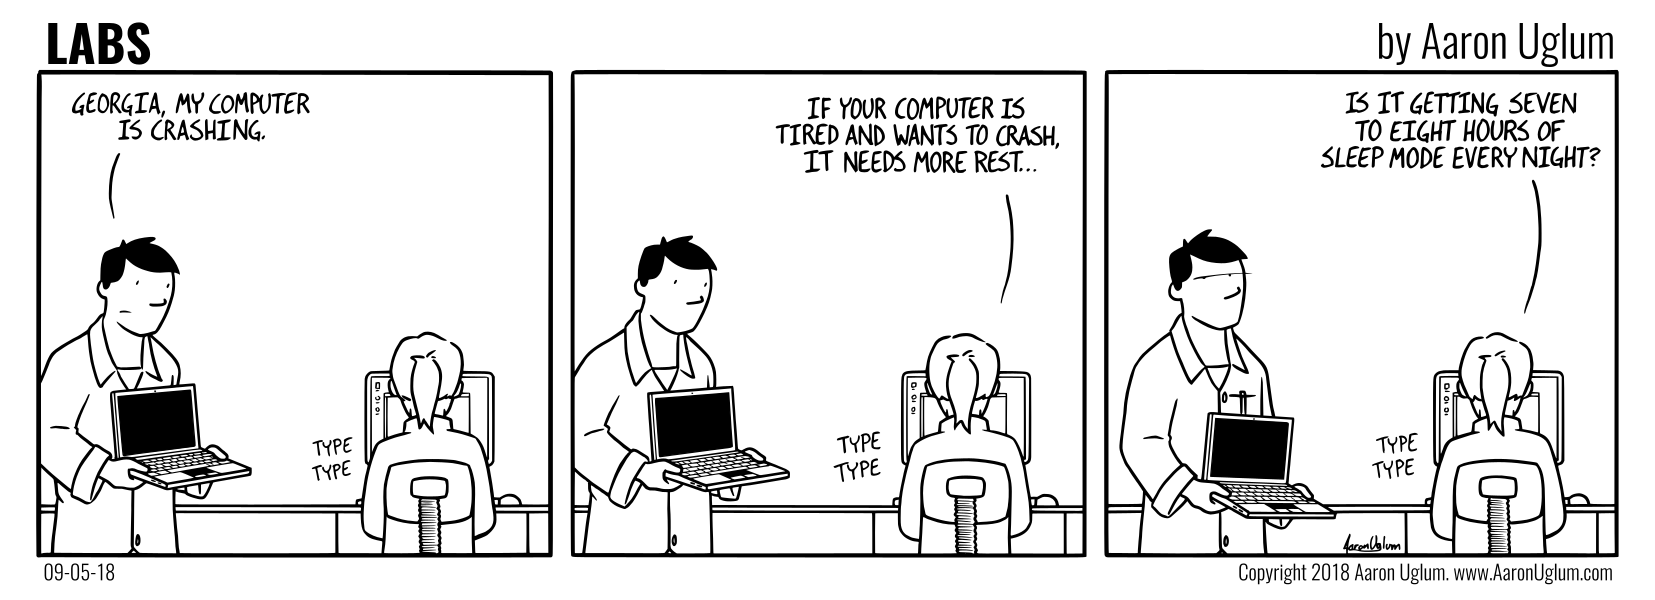 LABS Cartoon 09/05/18 - Crashing Computer